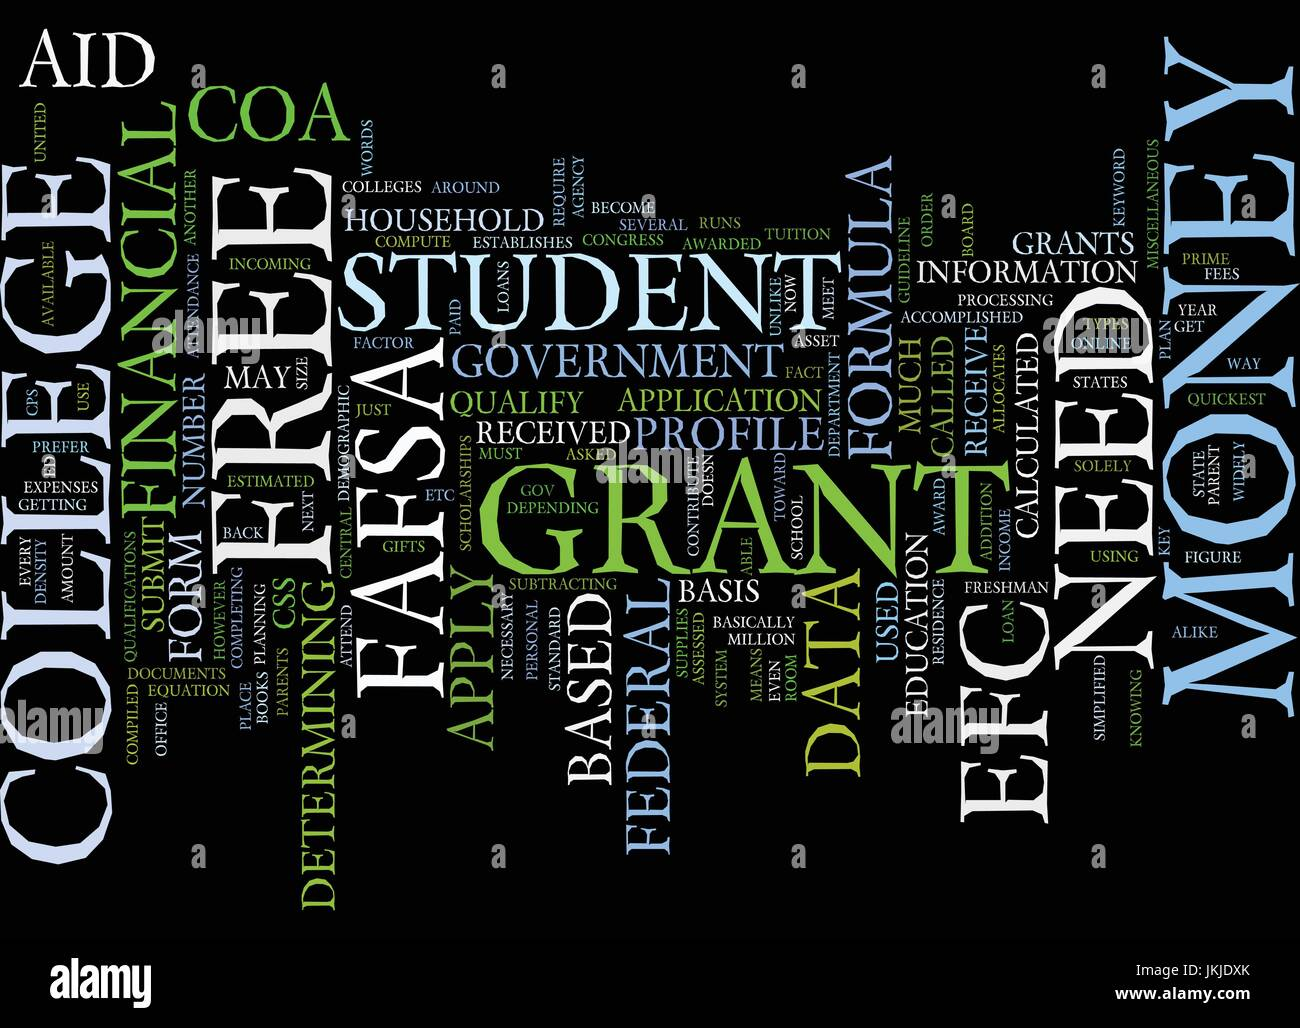 How to get free grant money for college